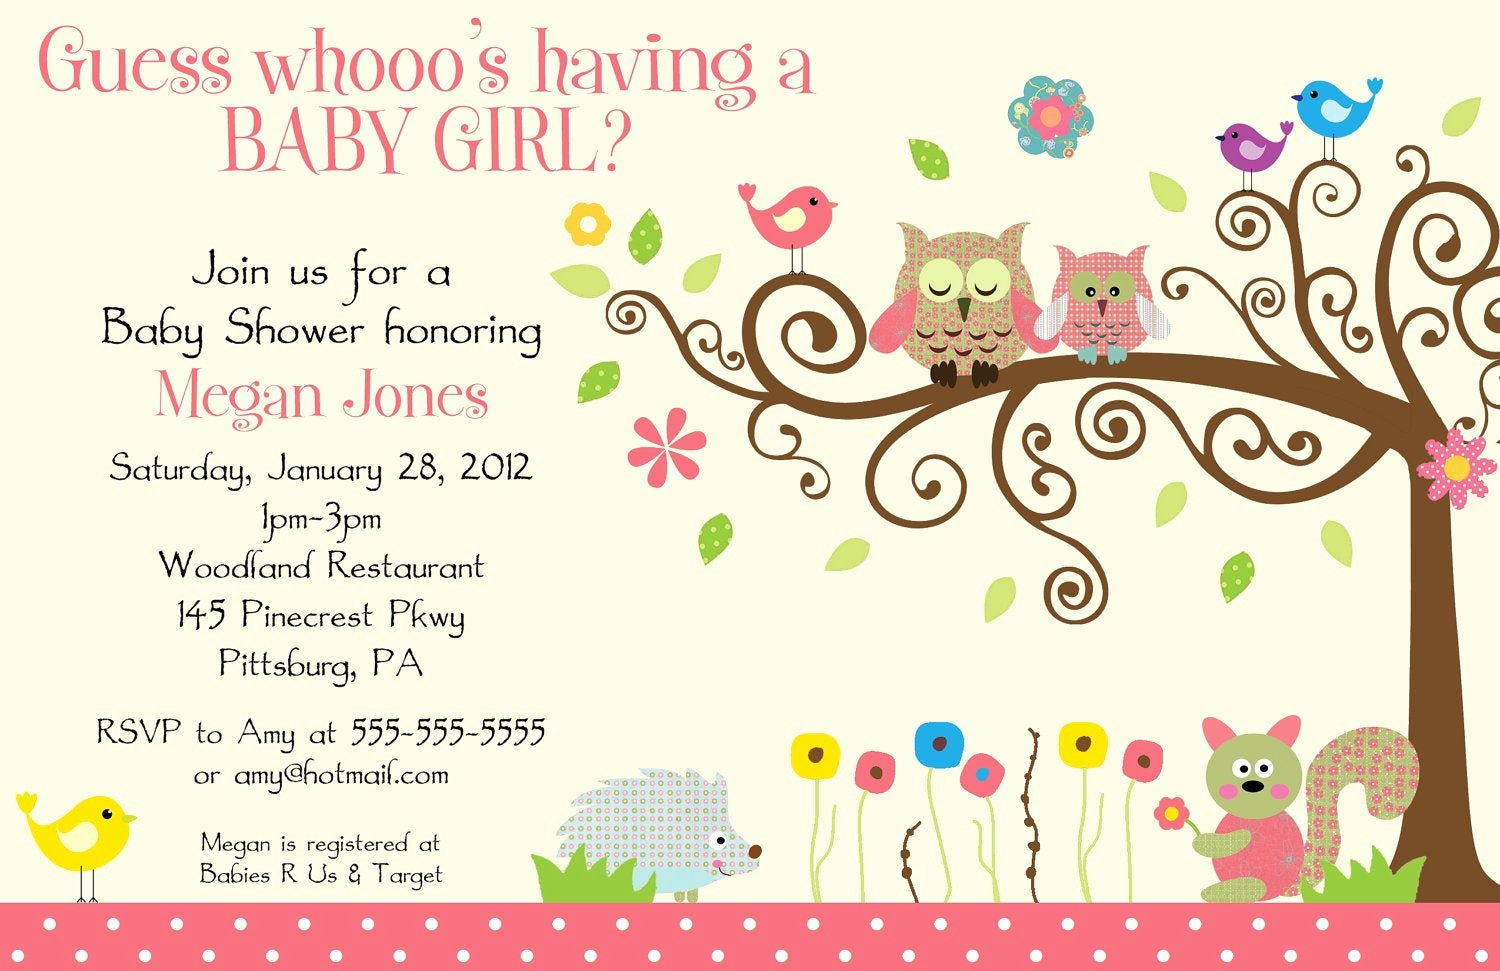 Owl Template for Baby Shower Awesome Whimsey Owl Whimsical Girl Digital Baby Shower by Bdesigns4you